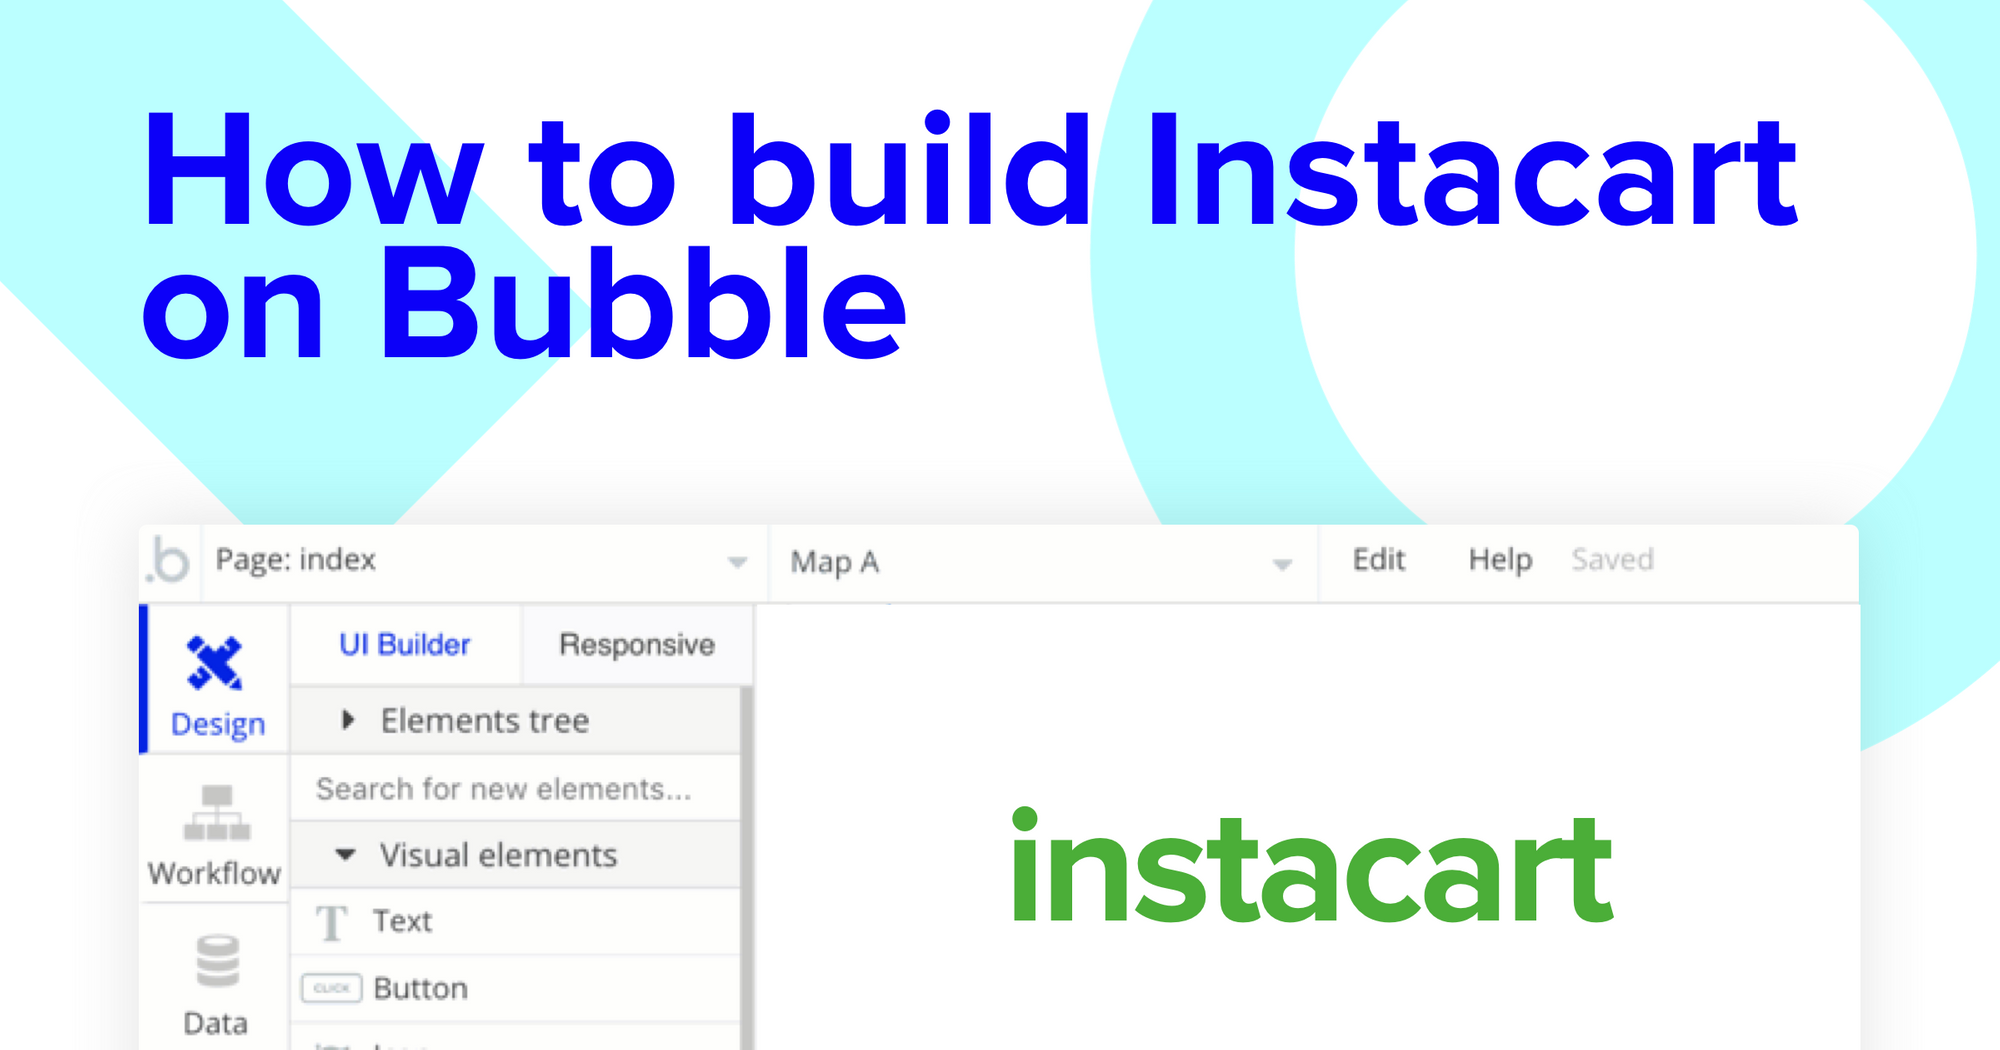 How To Build An Instacart Clone Without Writing Code